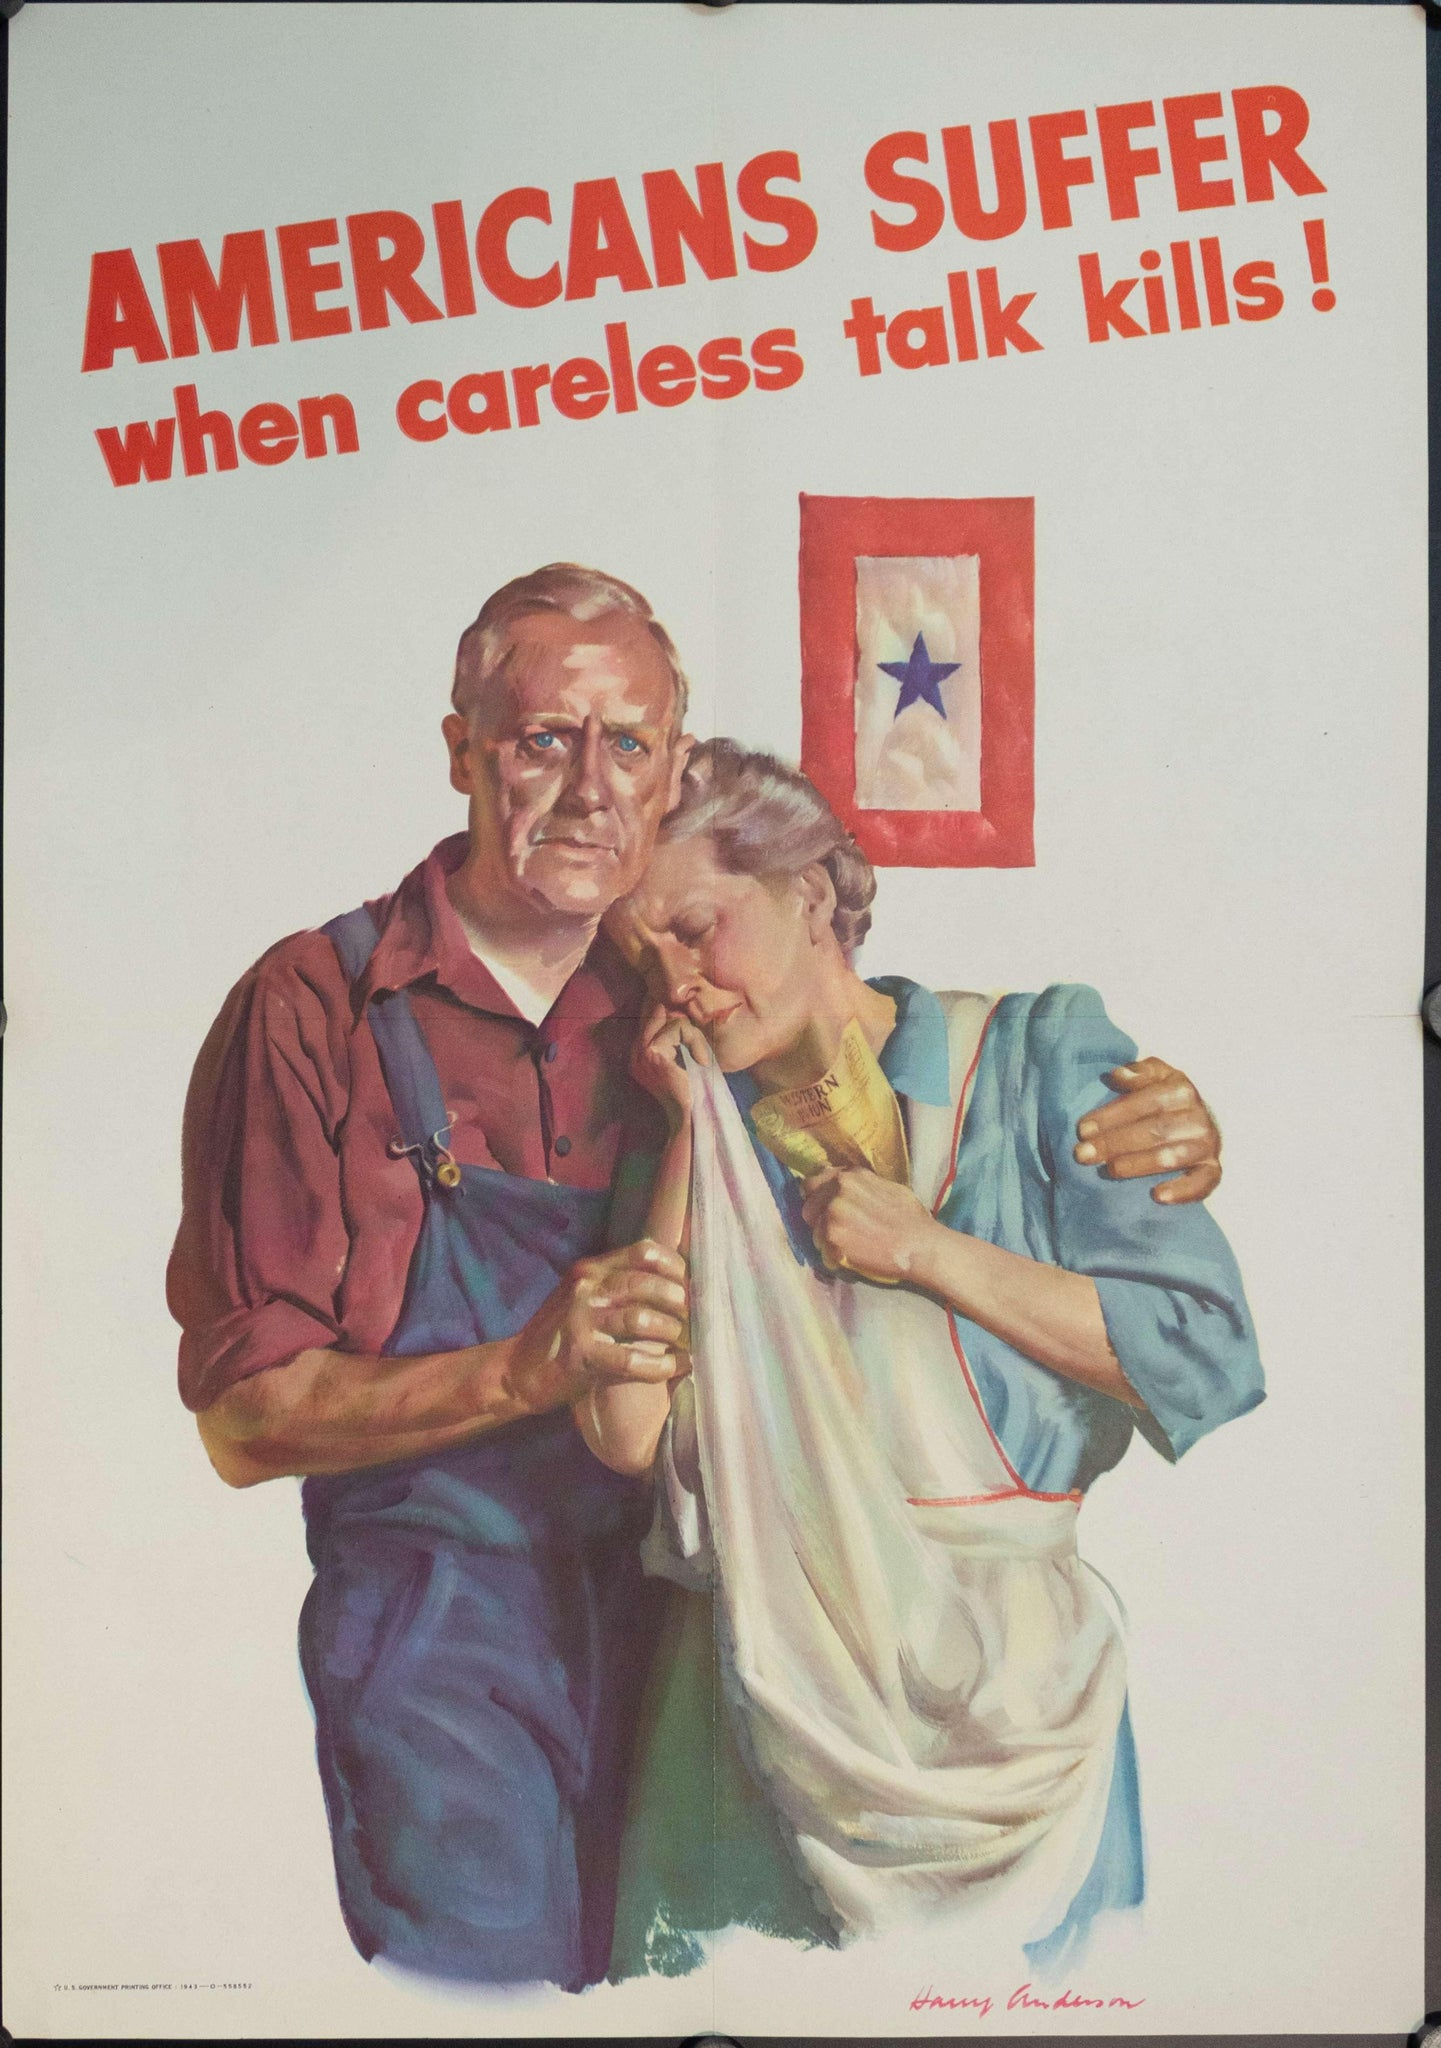 1943 Americans Suffer When Careless Talk Kills! - Golden Age Posters